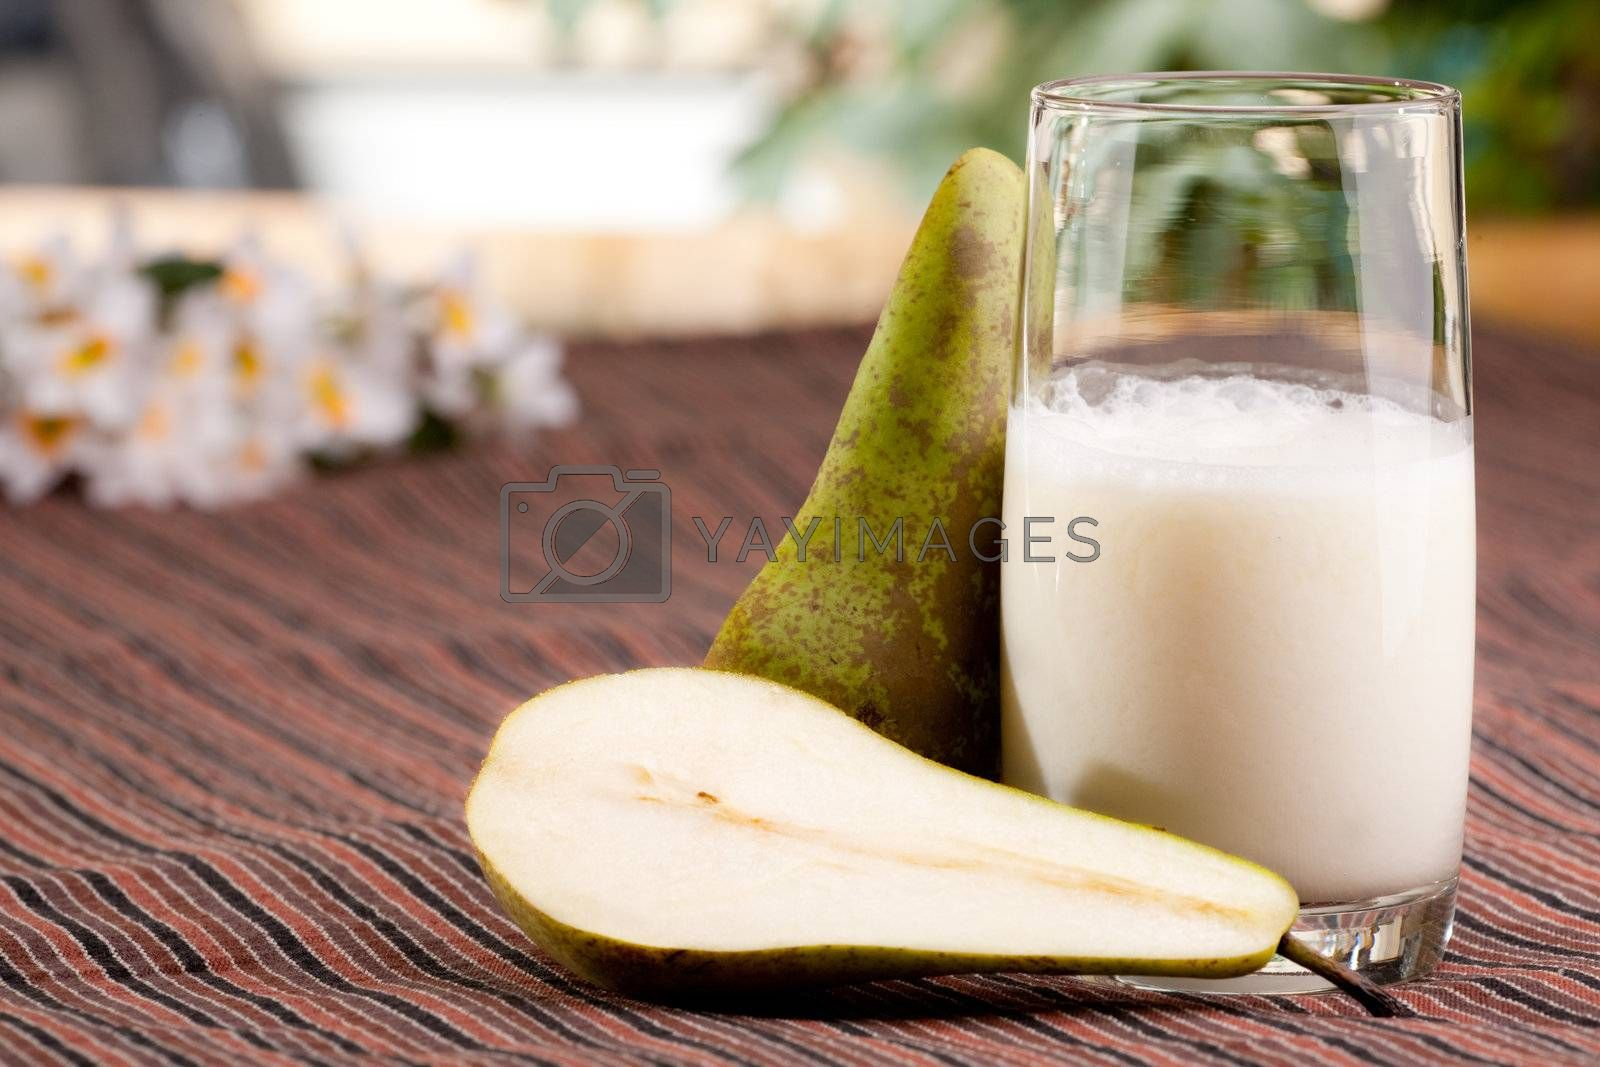 A tall glass of pear smoothie in a natural setting